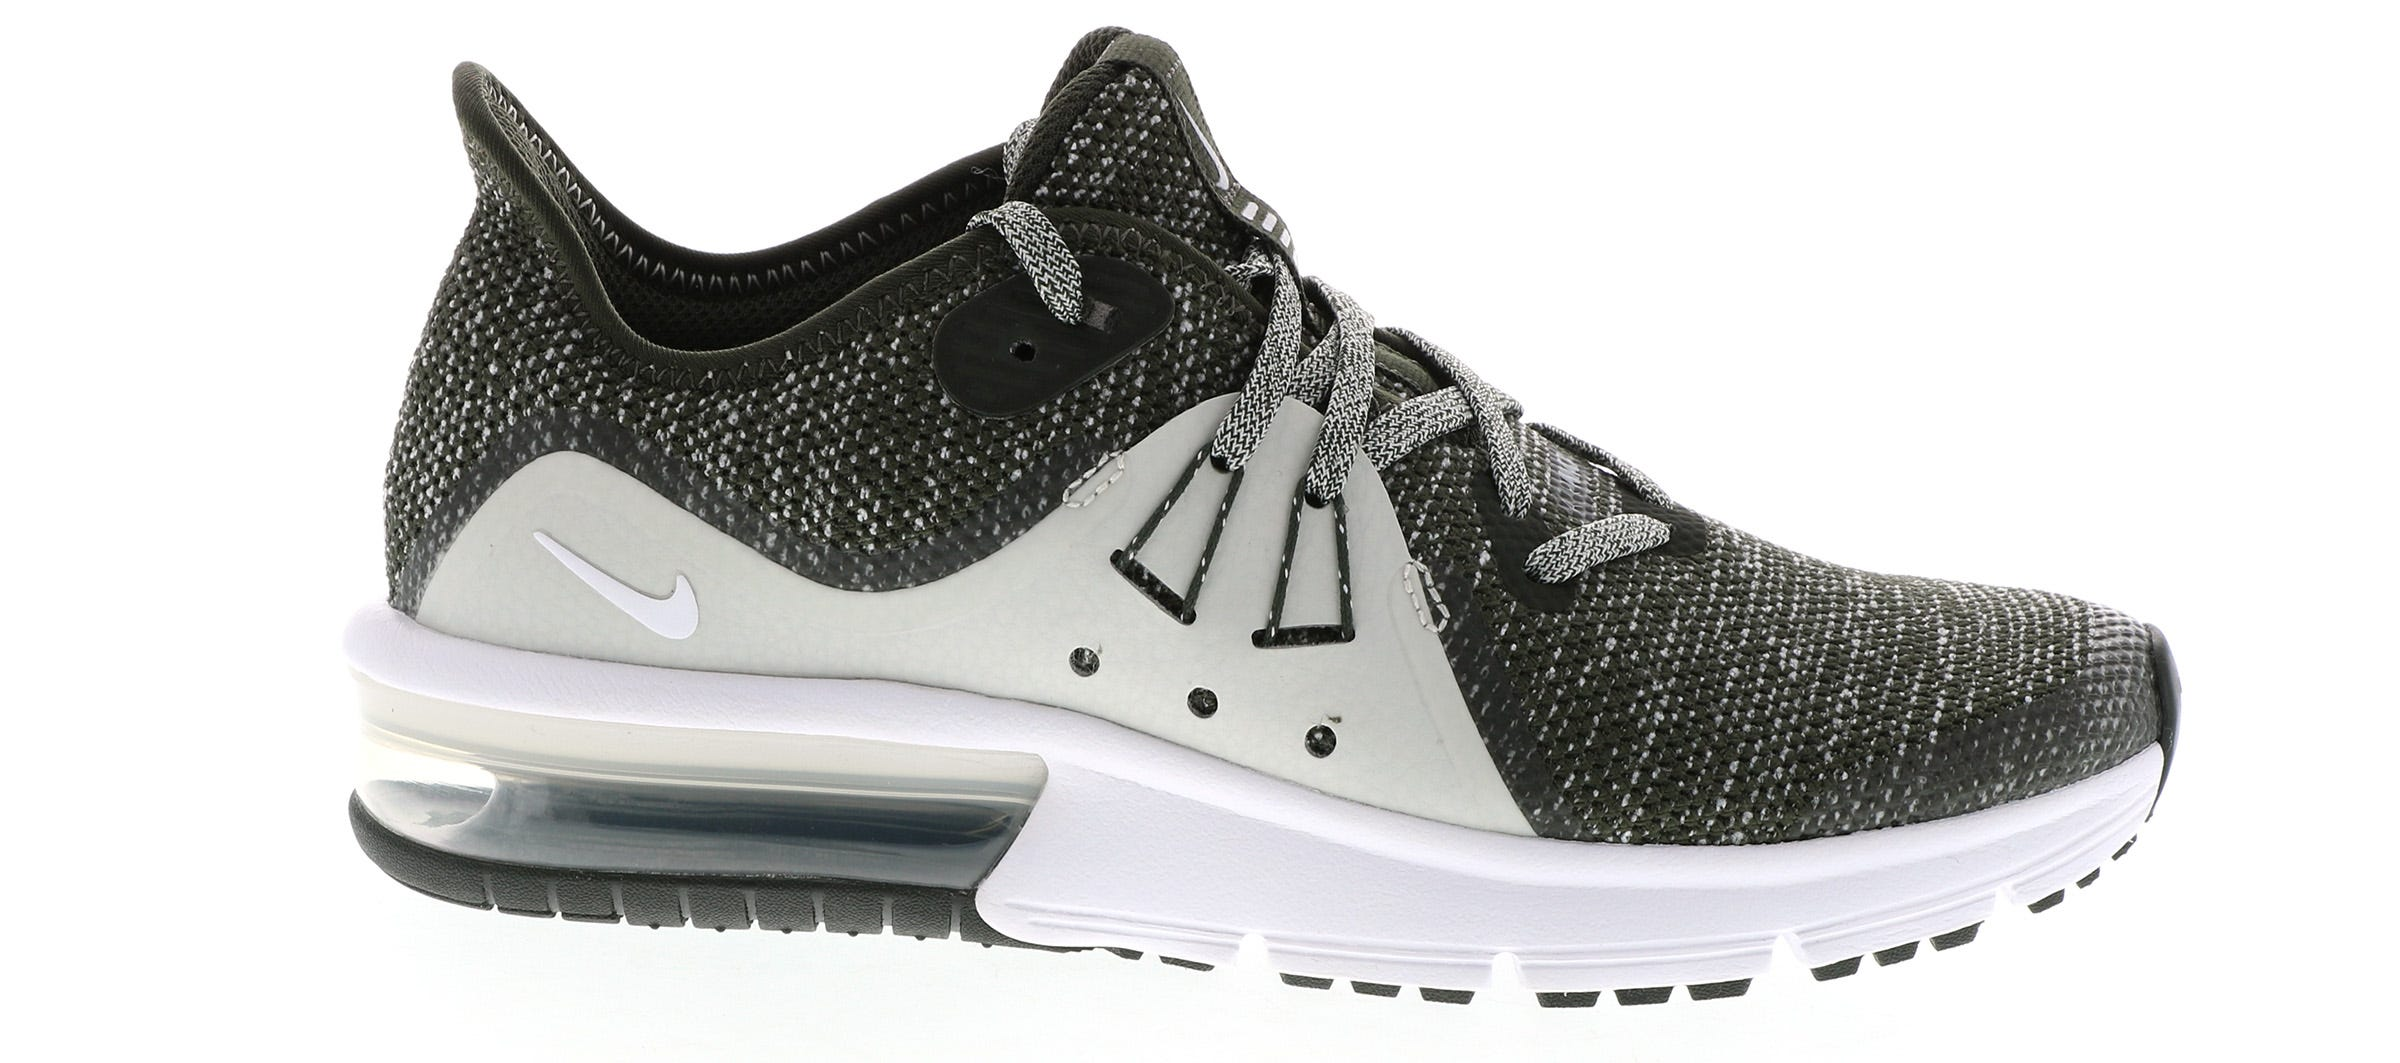 Nike Air Max Sequent 3 Sneaker